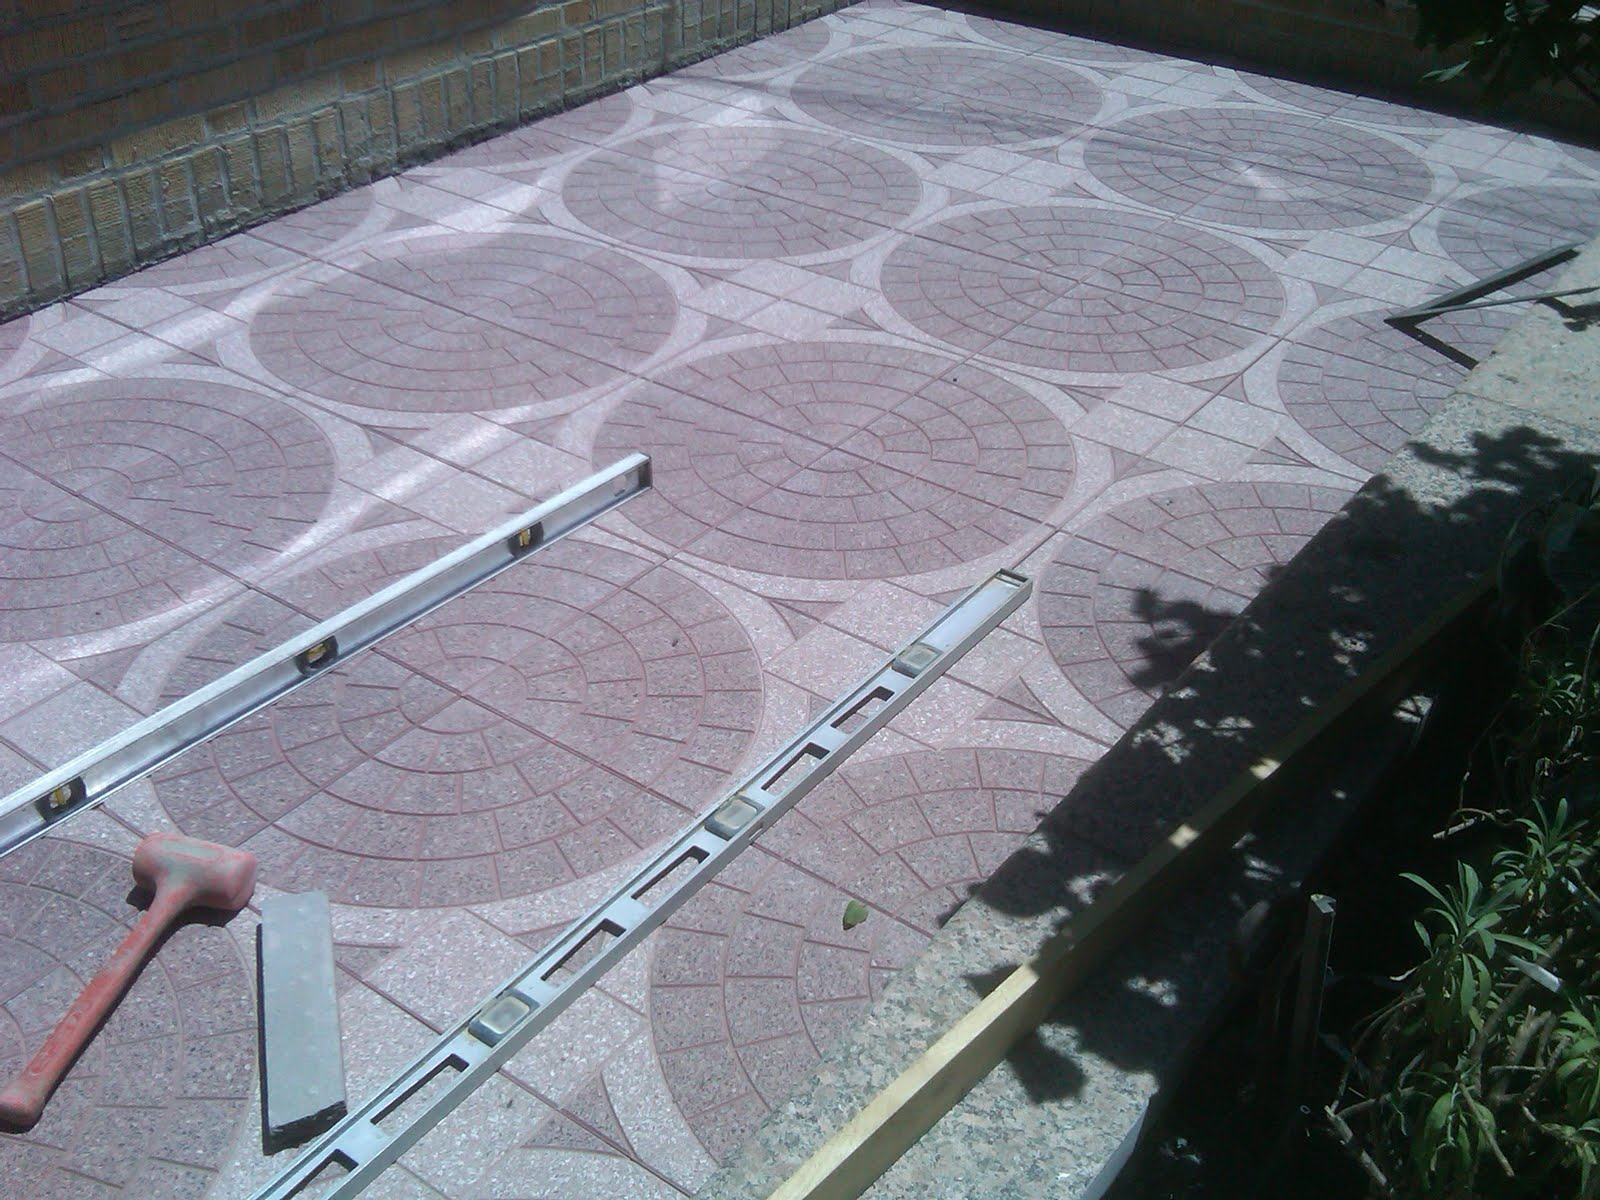 Jck Contracting Corp Patio Blocks Project. Designing Patio Spaces. The Patio Restaurant Goldhawk Road. Patio Furniture Chair Cushions. Modern Patio Area. Patio Slabs In Swansea. Www.walmart Outdoor Patio Furniture. Cost To Build Patio Vs Deck. Adding A Cover To Your Patio